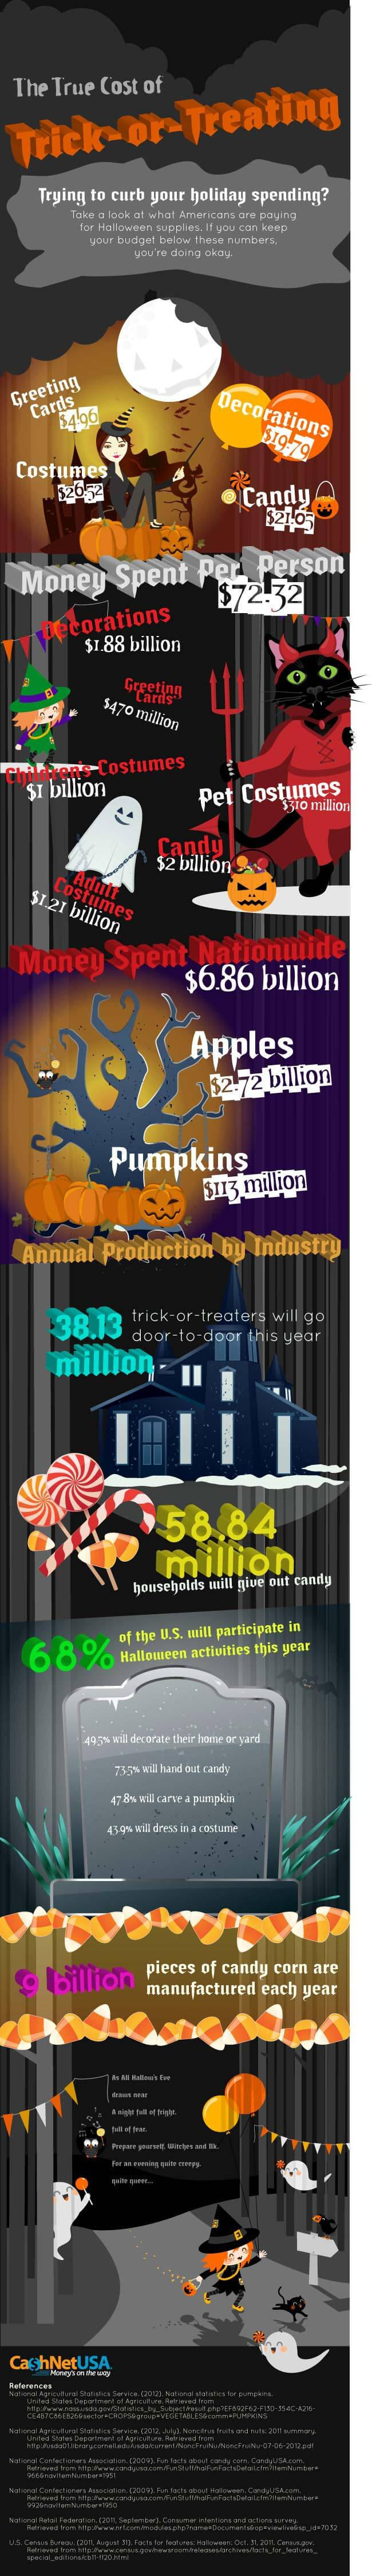 The True Cost of Trick-or-Treating (infographic)